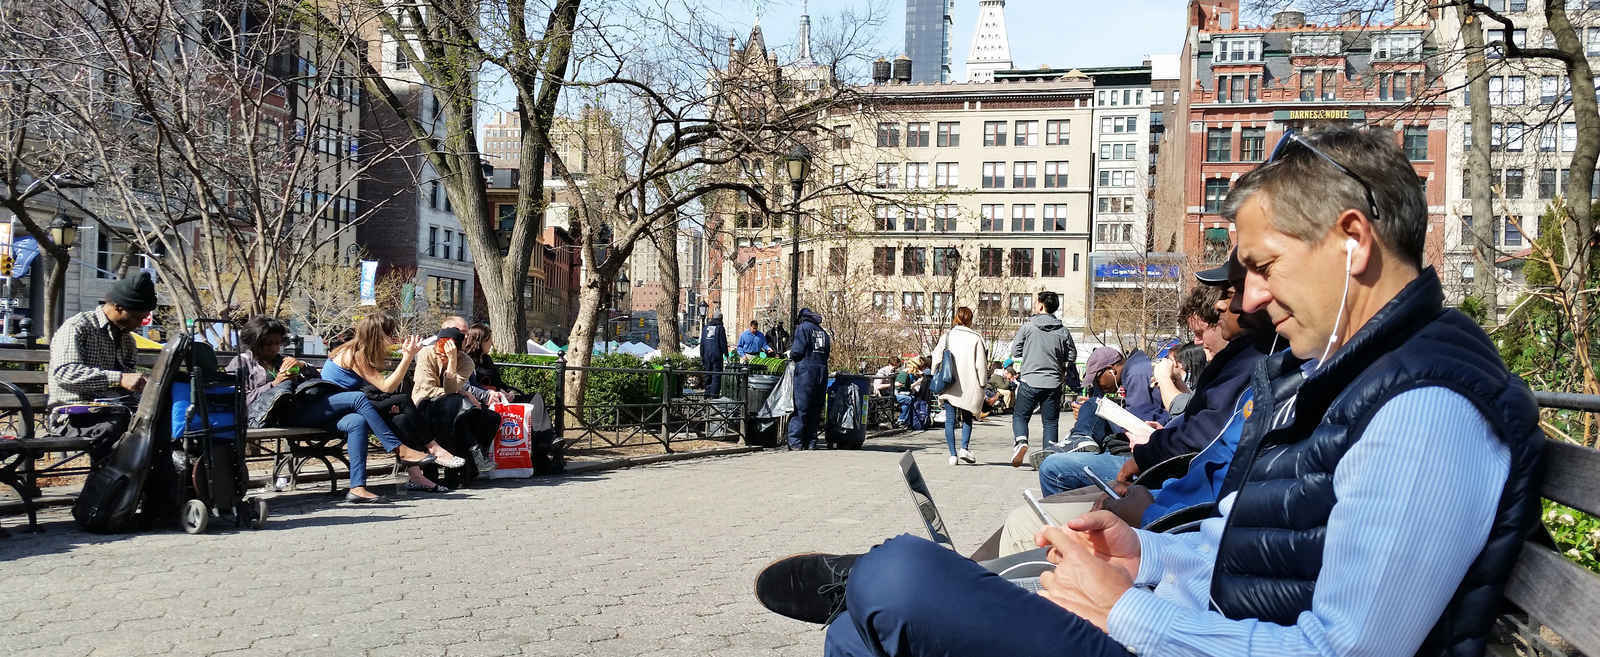 People relaxing in Union Square New York